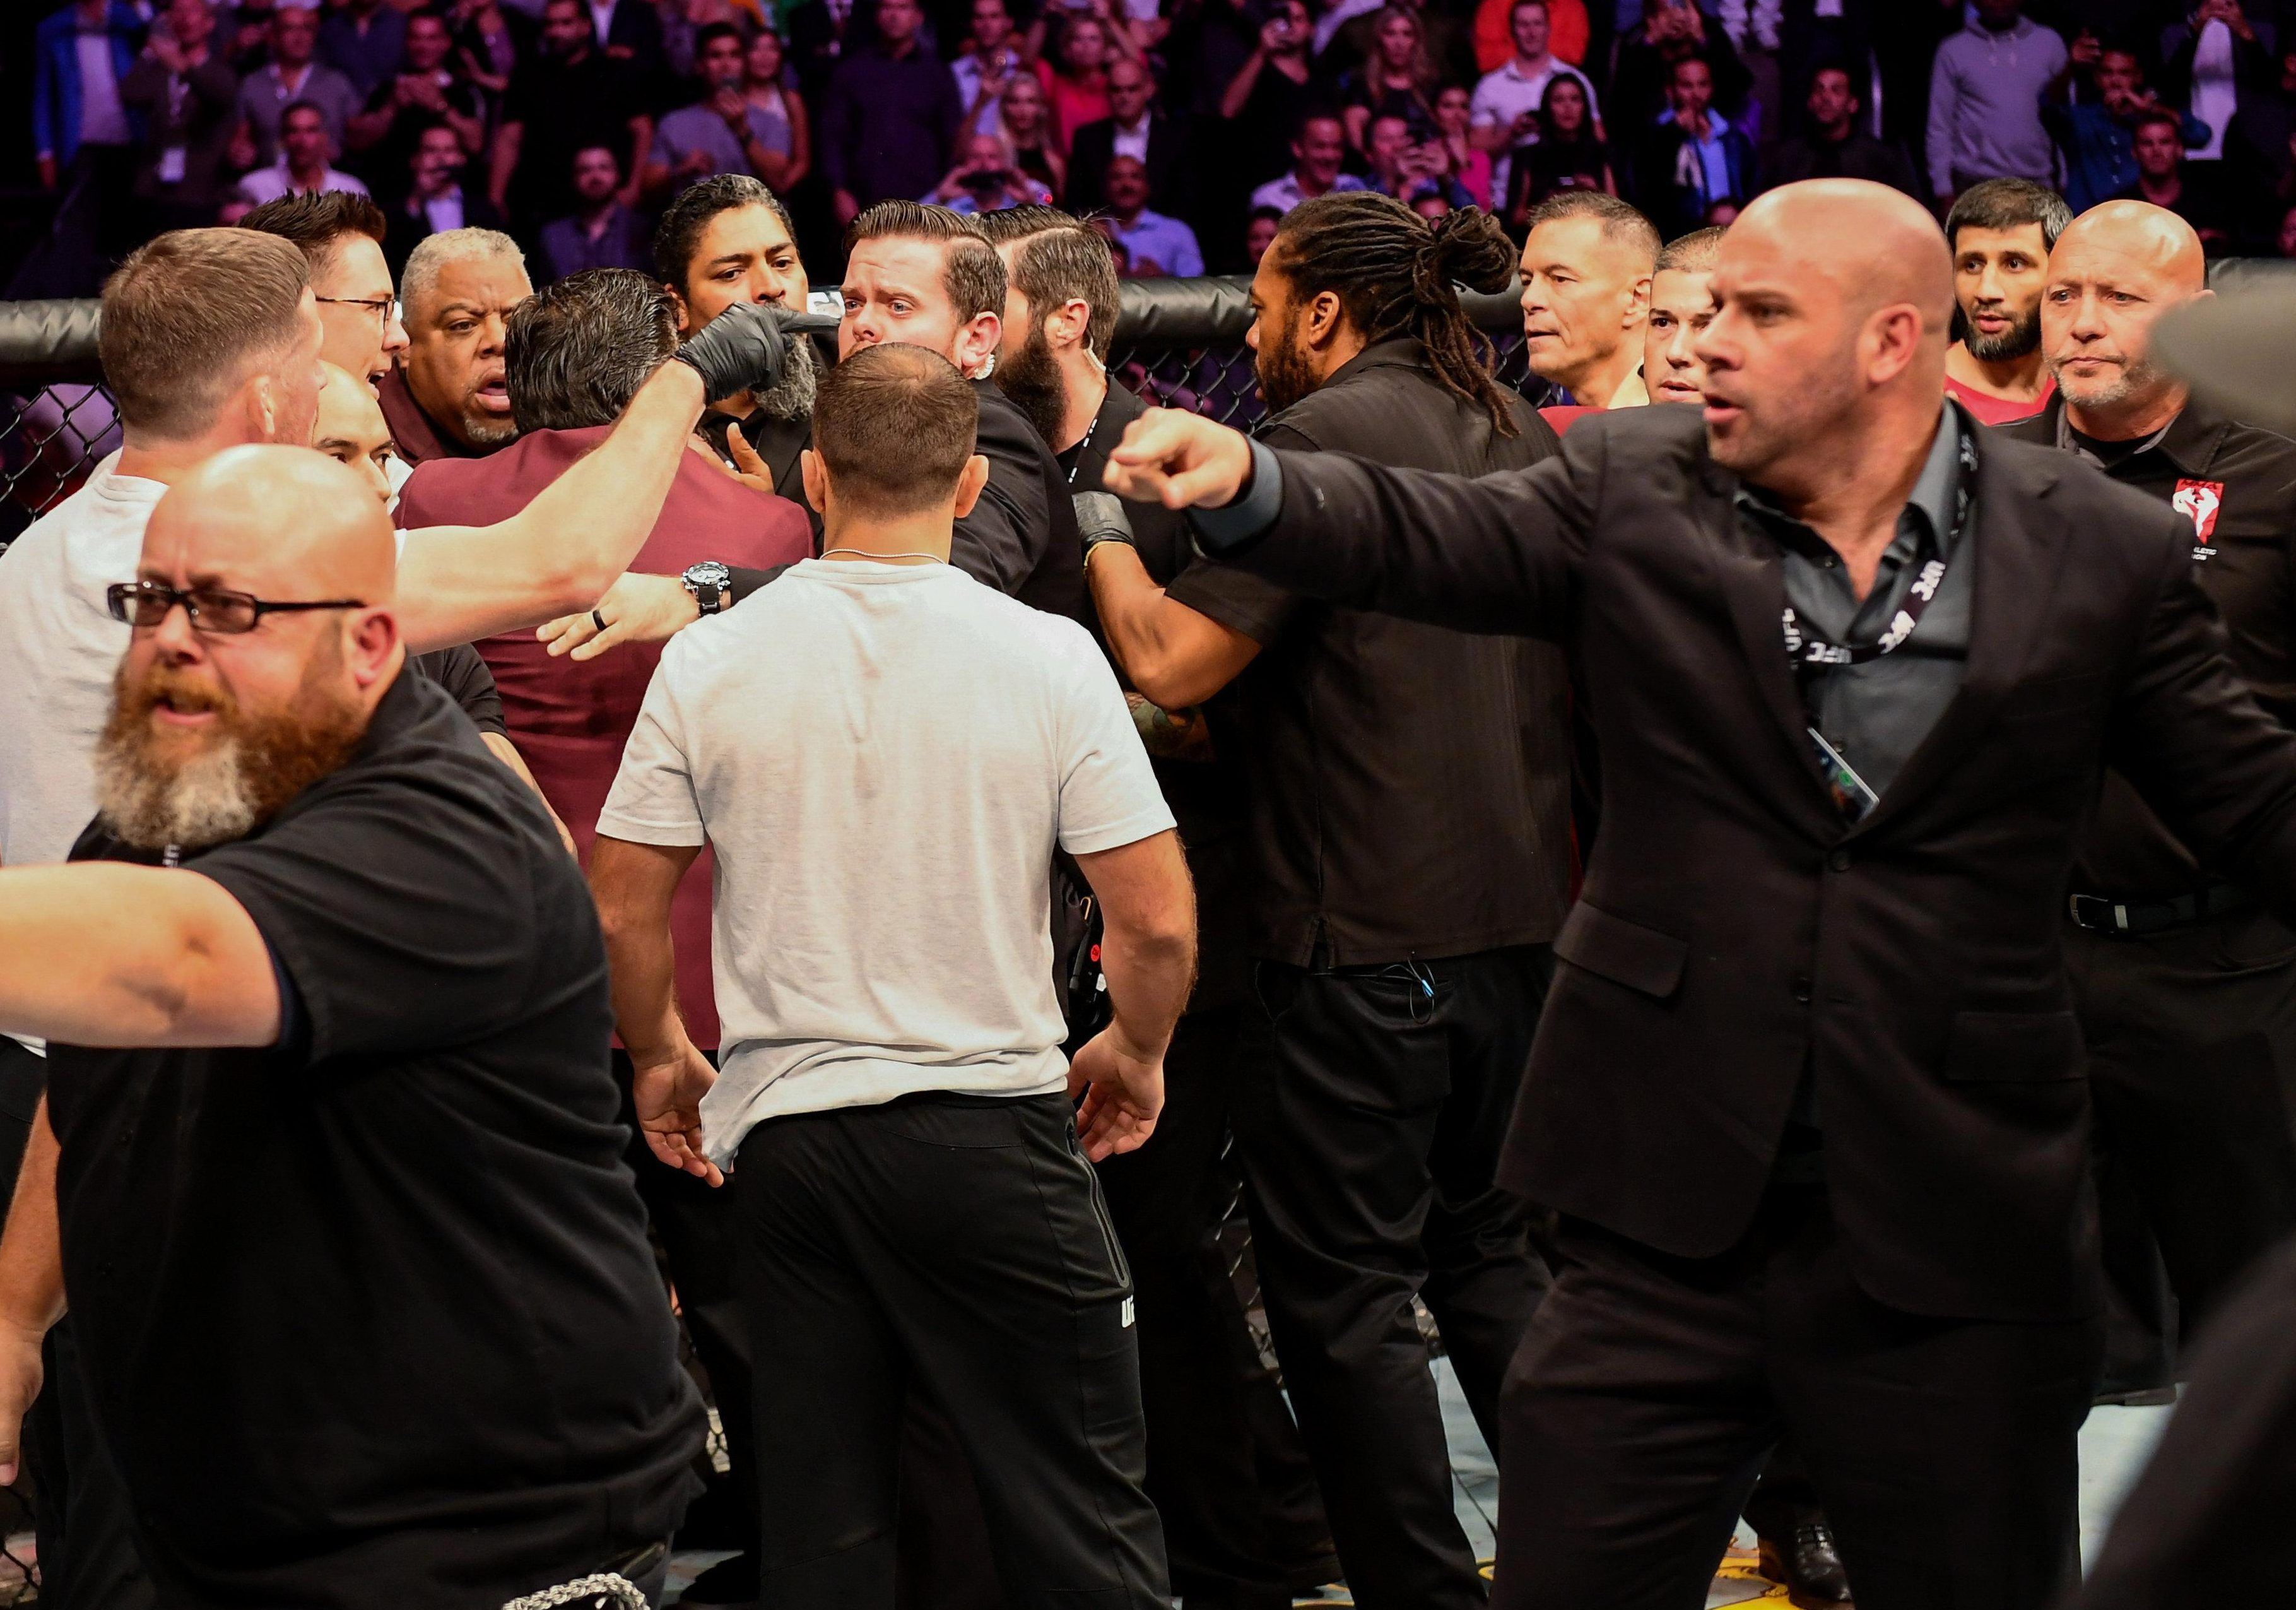 A brawl involving Conor McGregor broke out in the ring